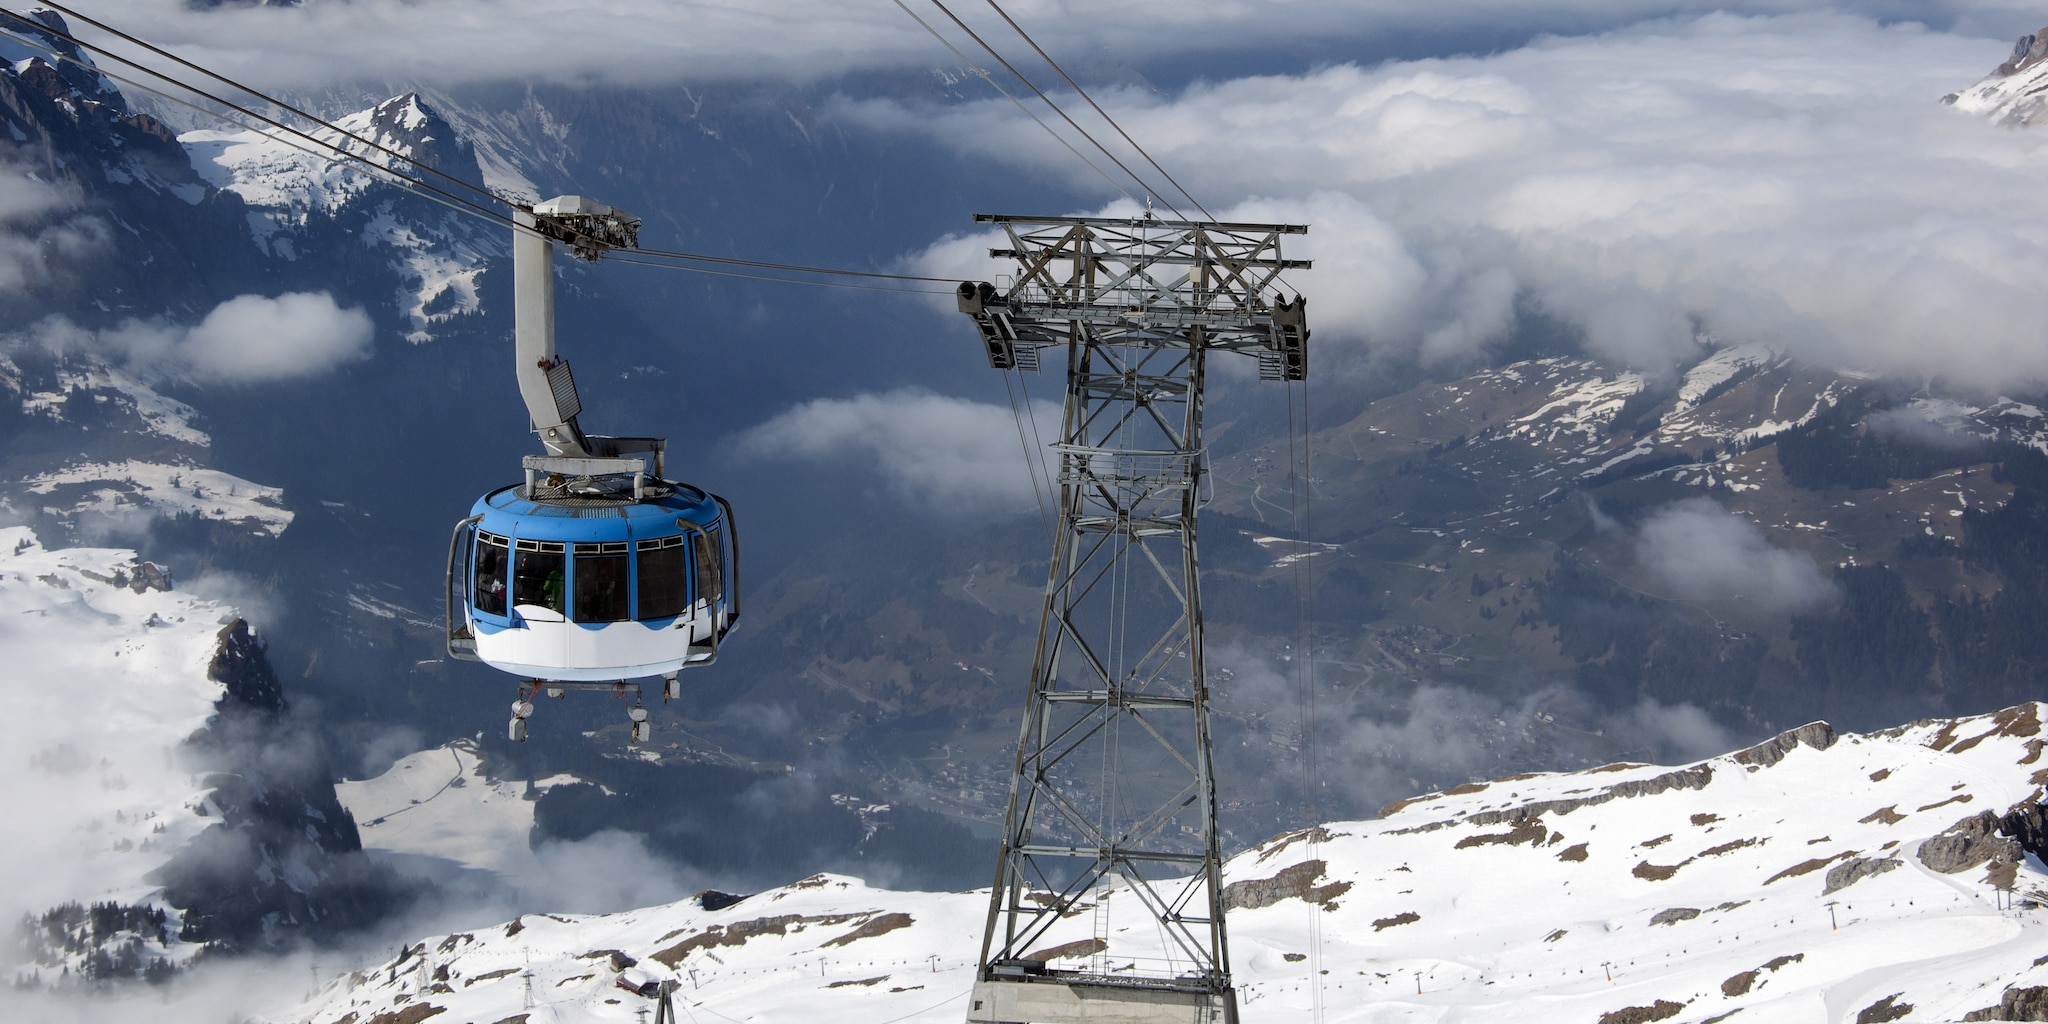 A an aerial cable car rides through a region with snow-covered mountains